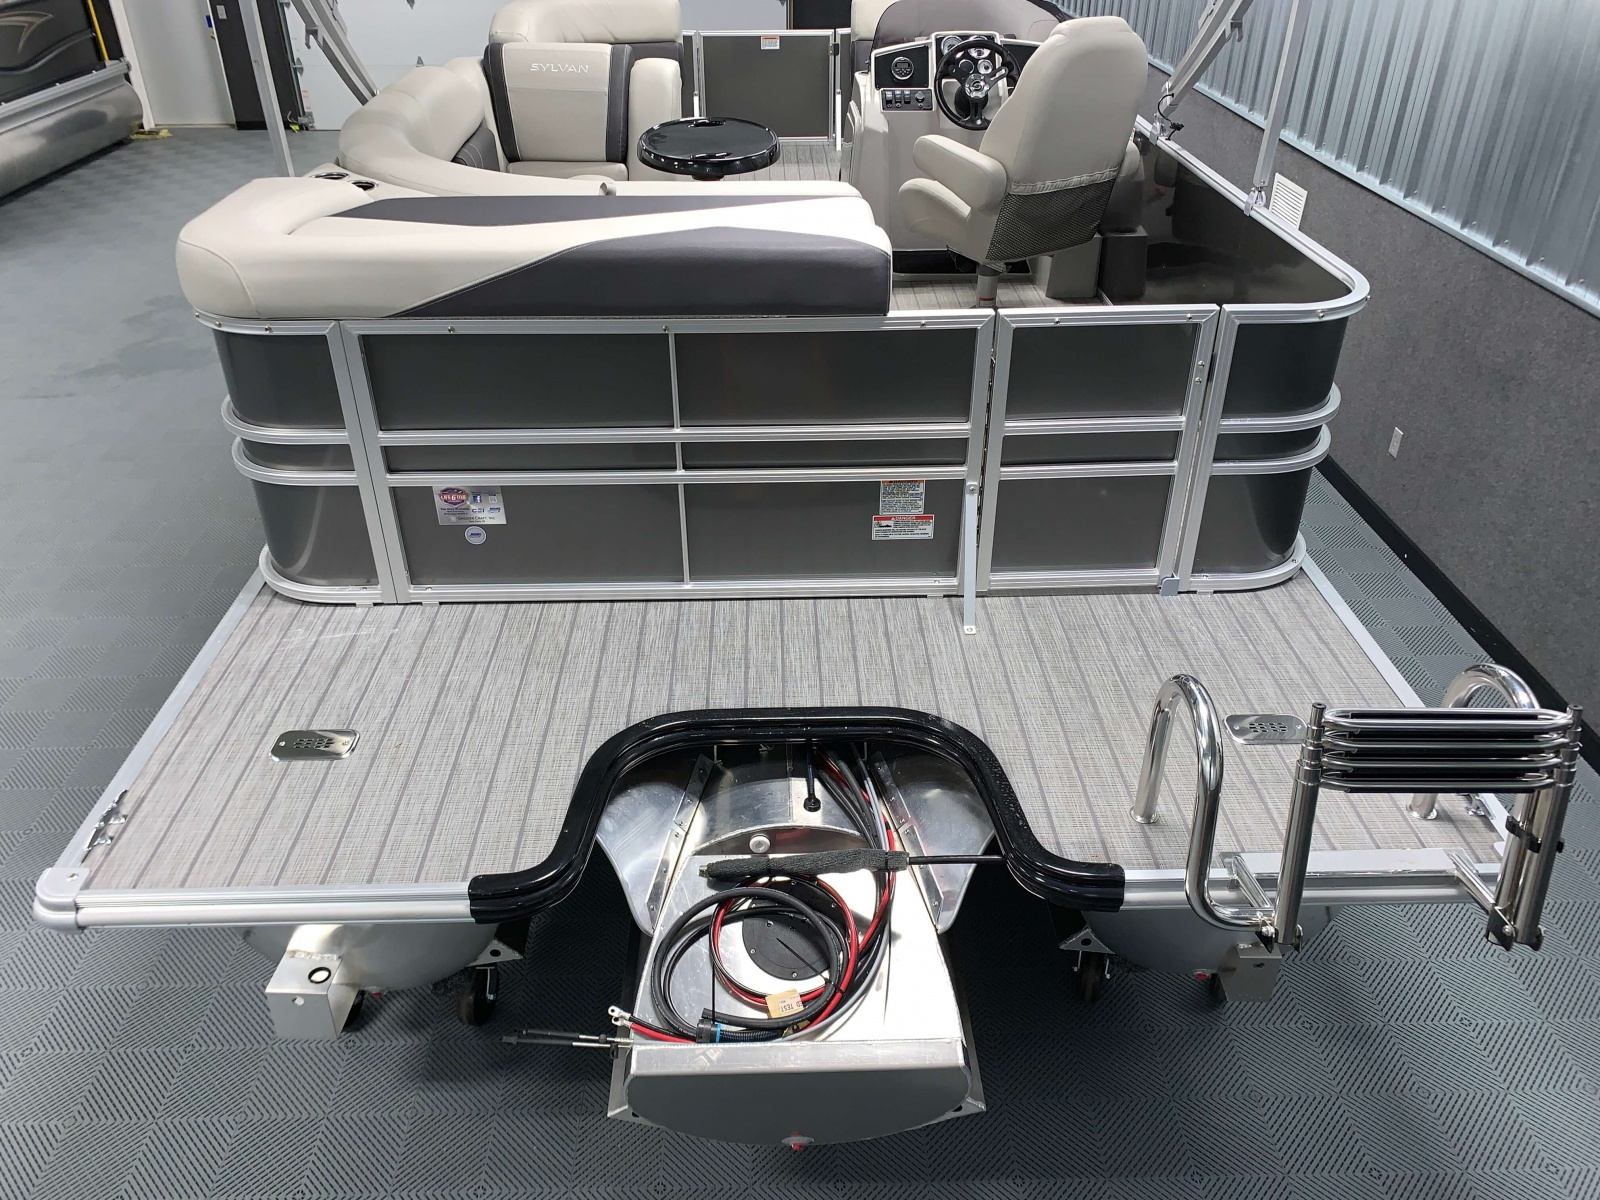 Extended Rear Deck of a 2020 Sylvan Mirage 8520 Cruise Tritoon